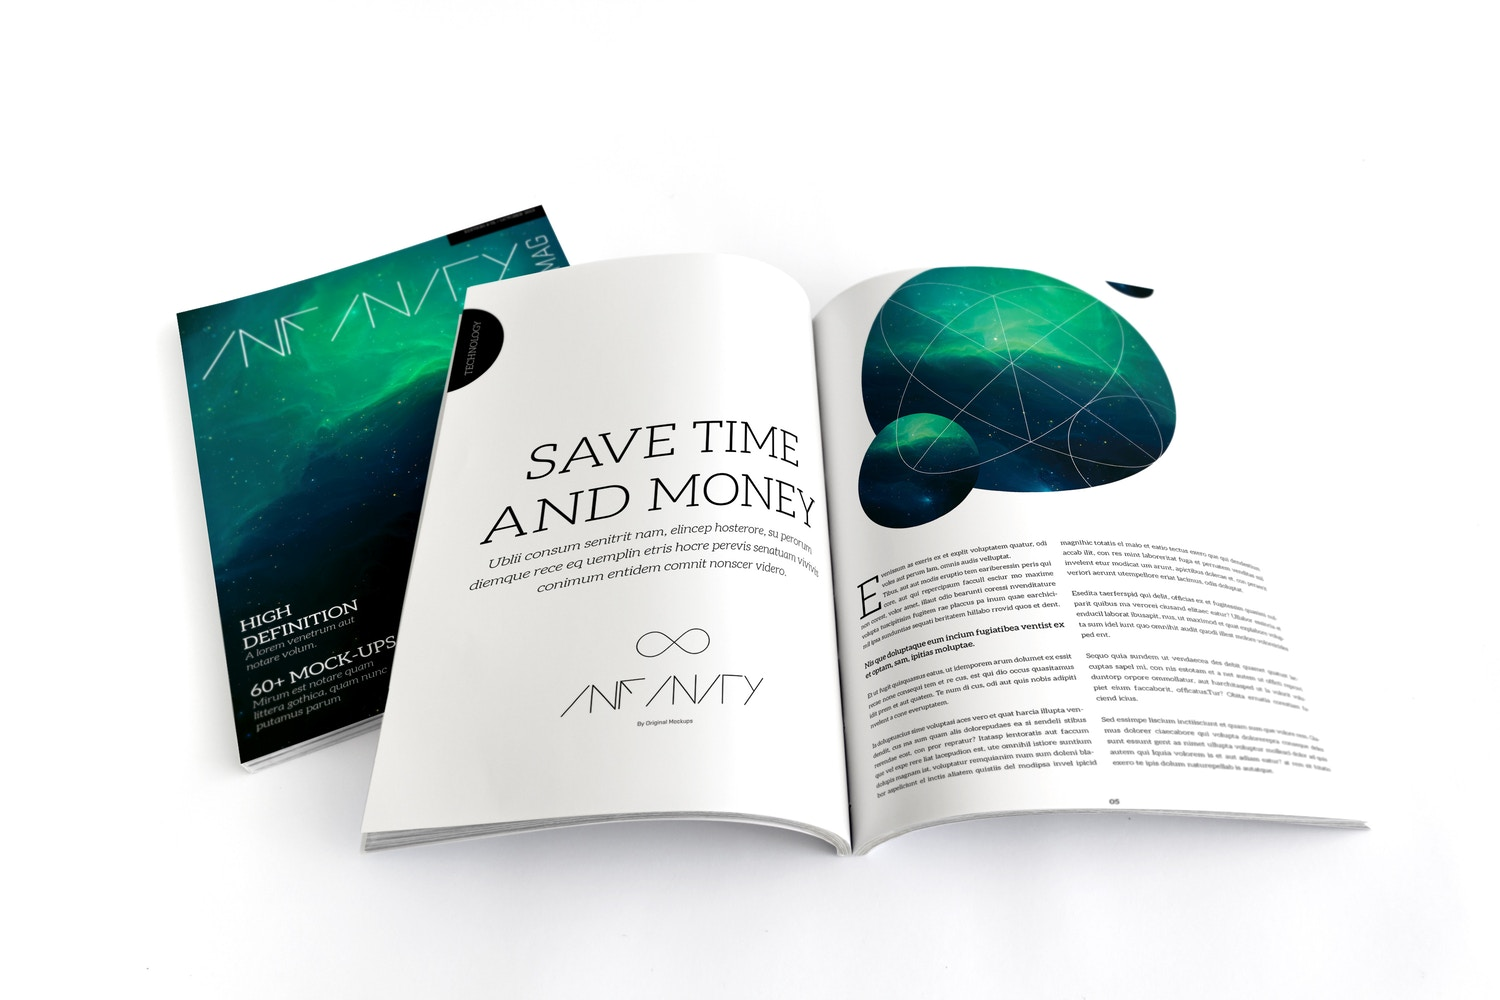 A4 Magazine Mockup for Spread Page & Cover 01 by Original Mockups on Original Mockups